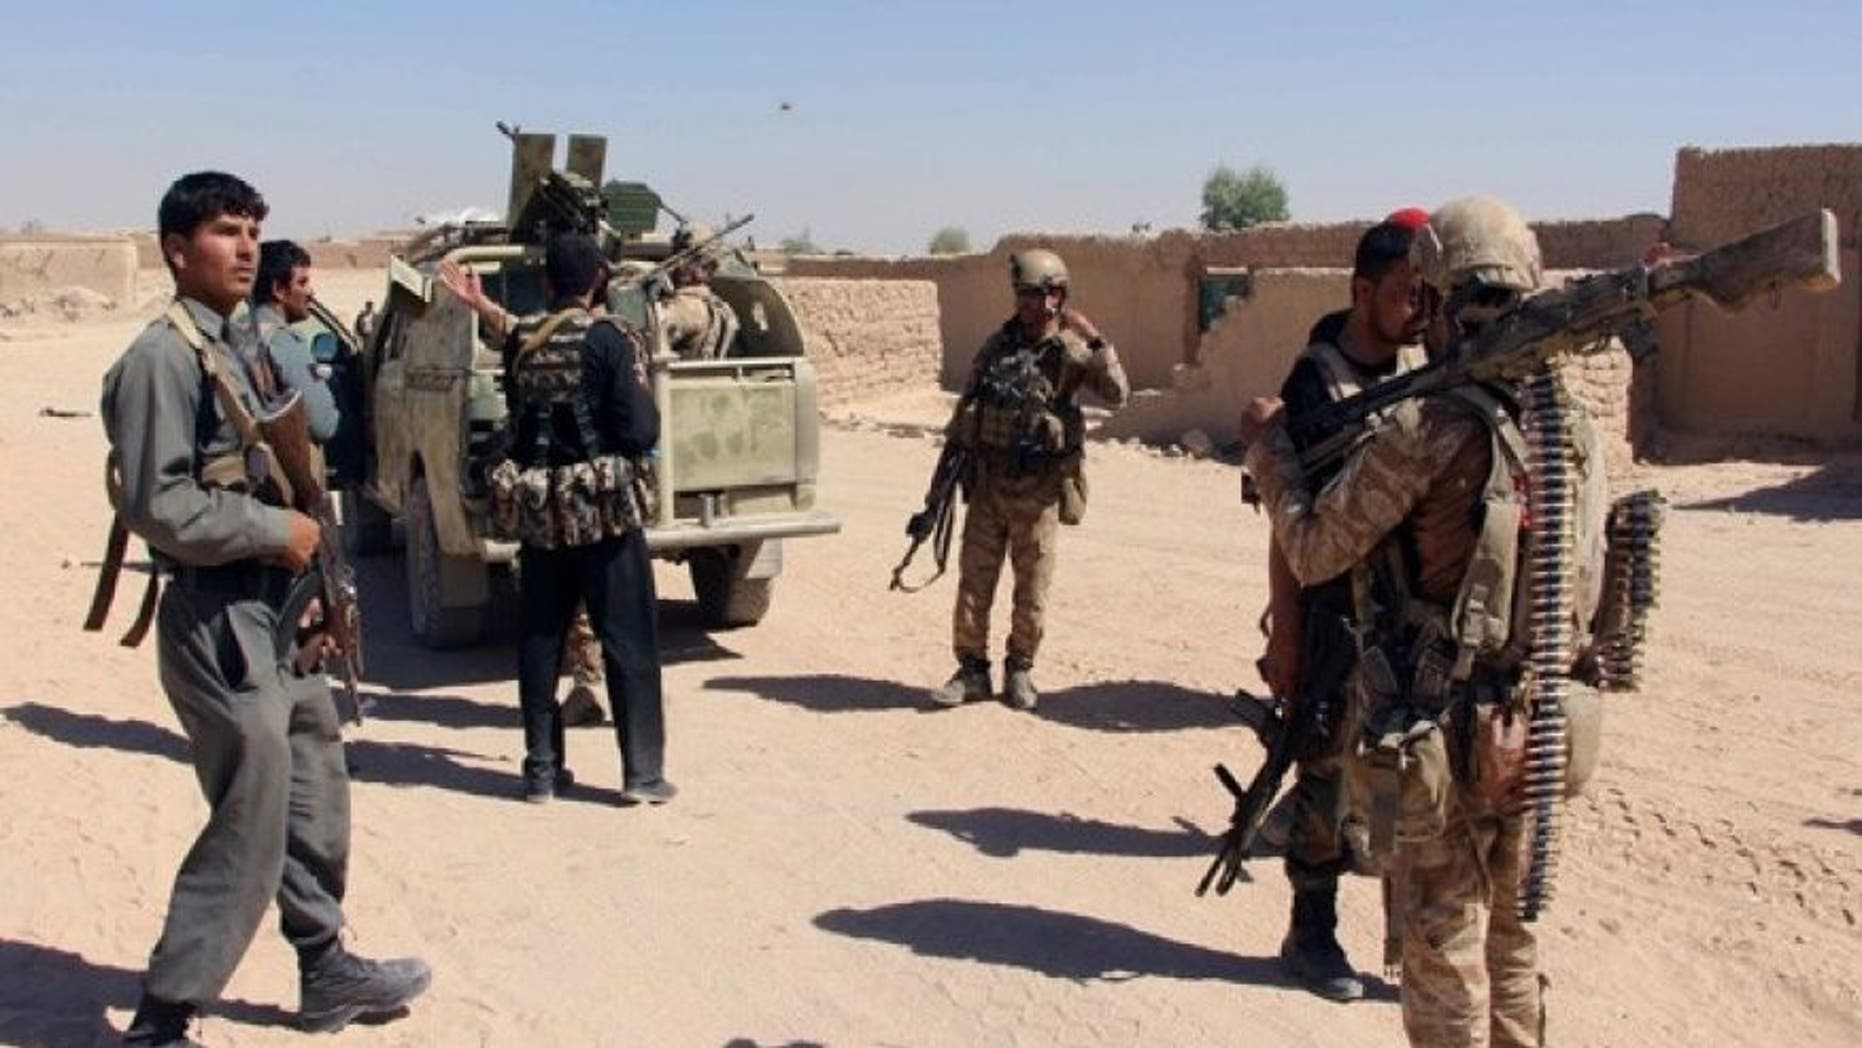 US military says 2 American soldiers killed in Iraq | Fox News